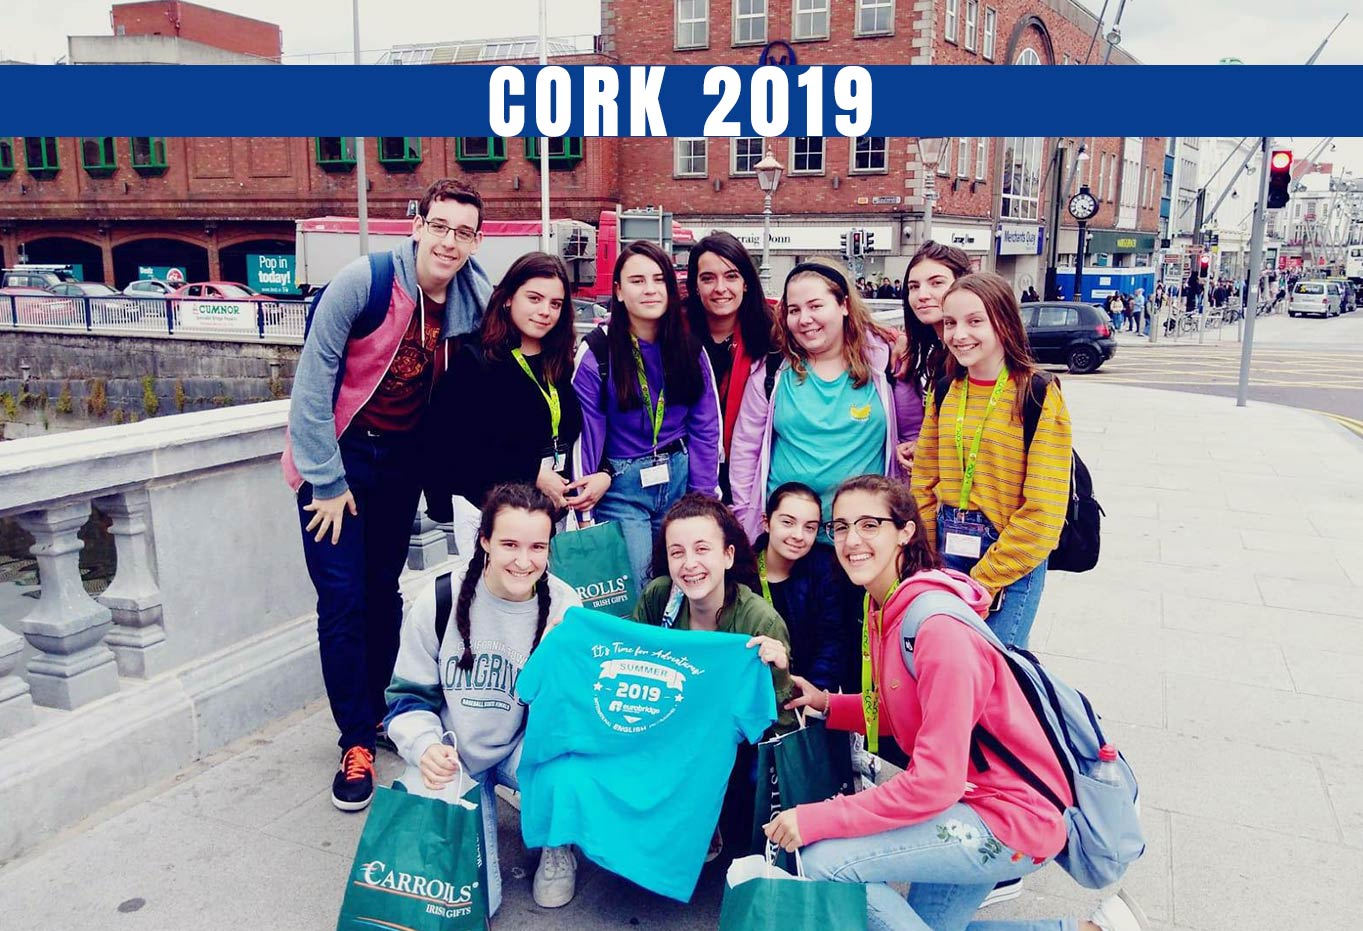 Program Review: CORK 2019